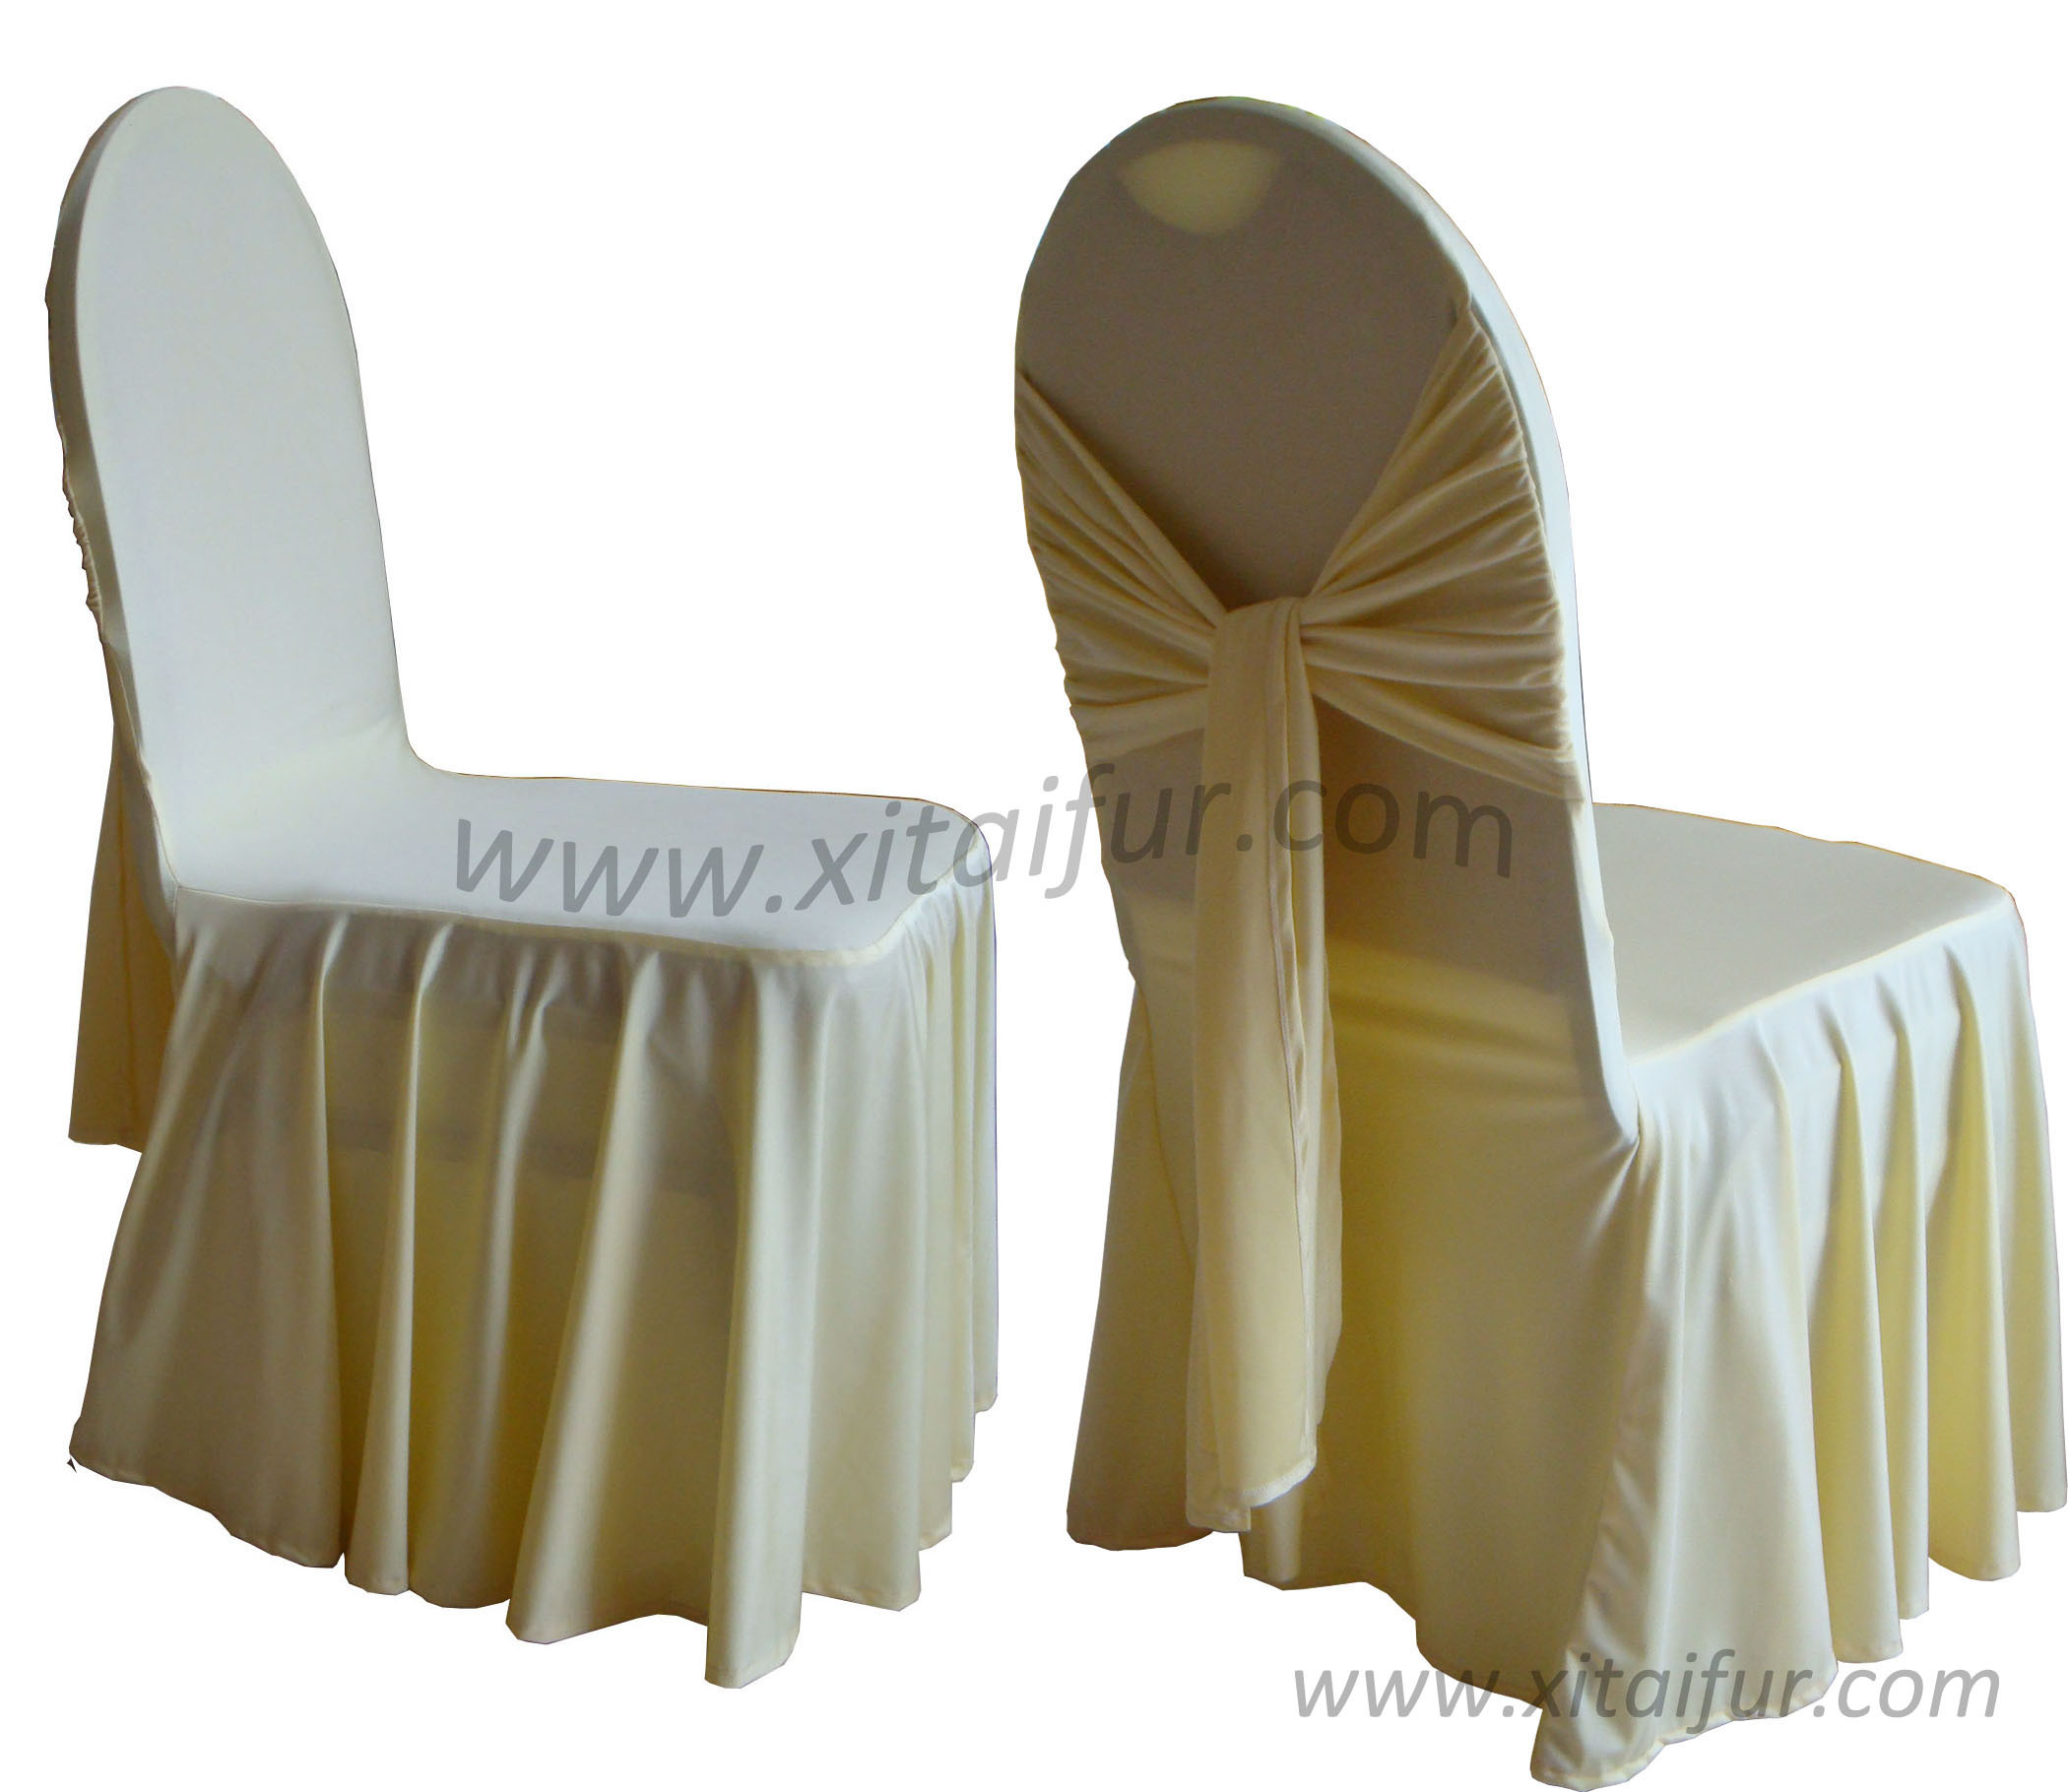 china mall chair covers hans wegner shell scuba cover yly sc spandex